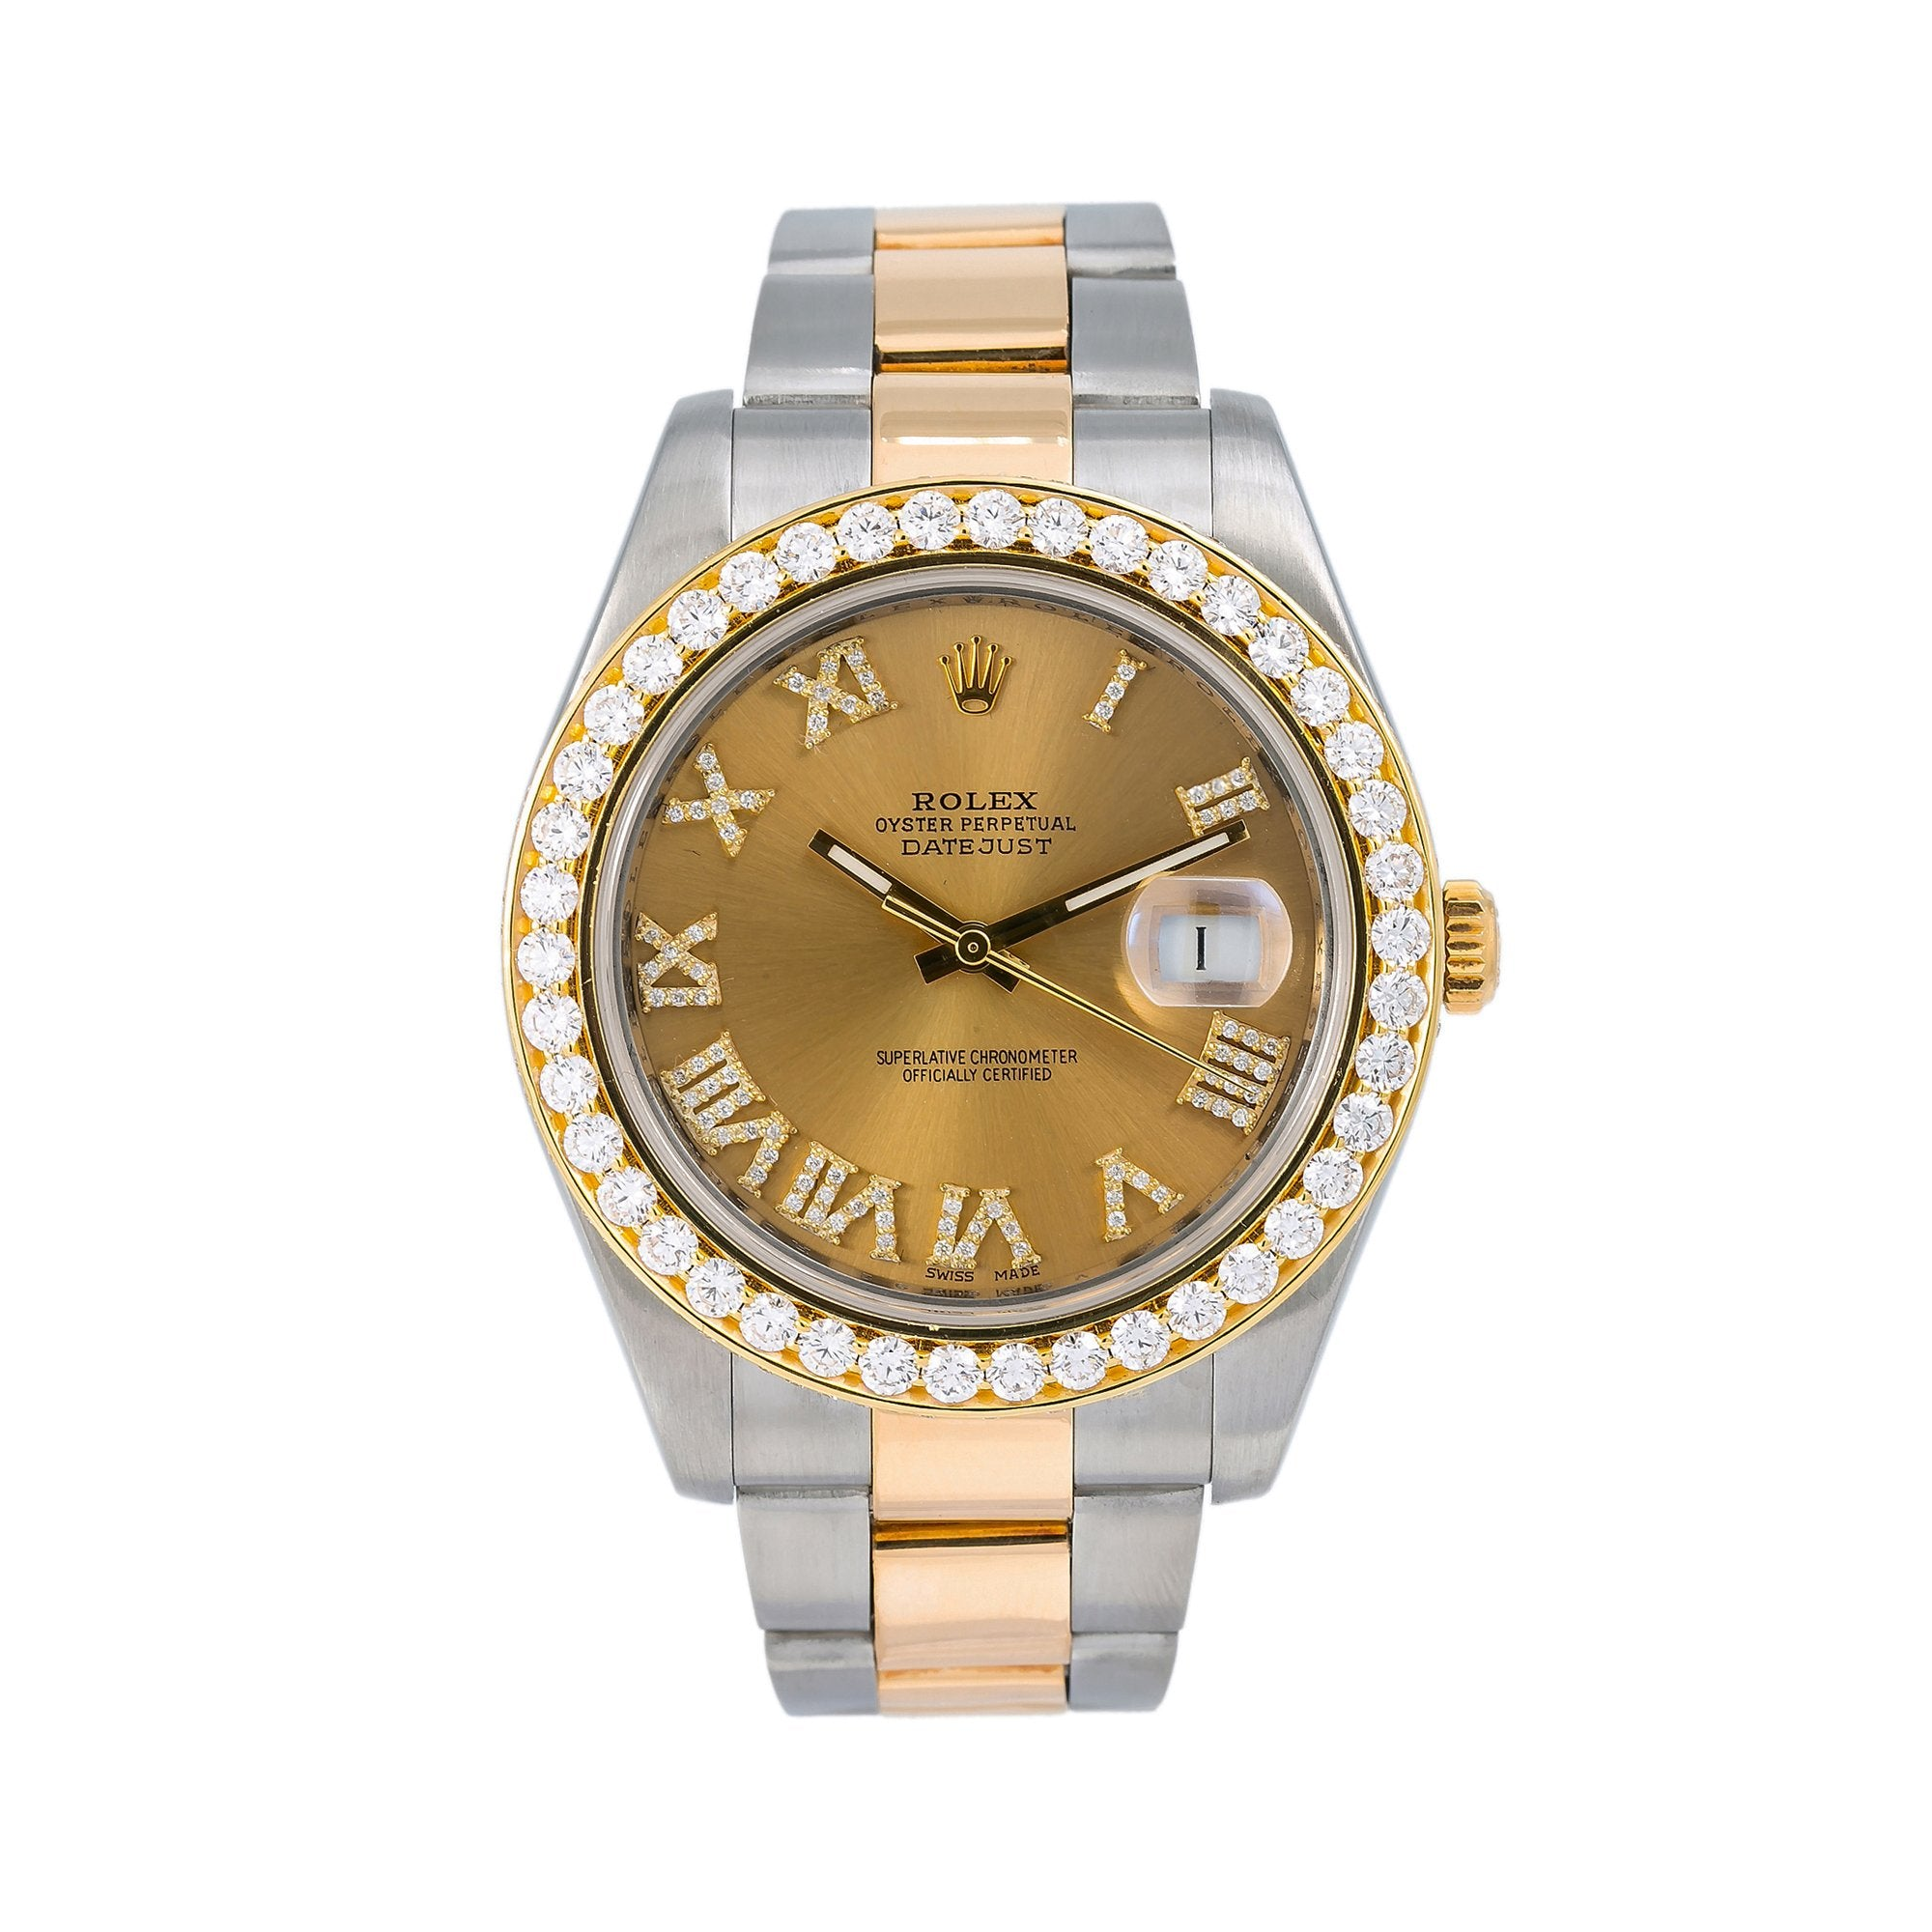 Rolex Datejust II Diamond Watch, 116333 41mm, Champagne Diamond Dial Two Tone Oyster Bracelet